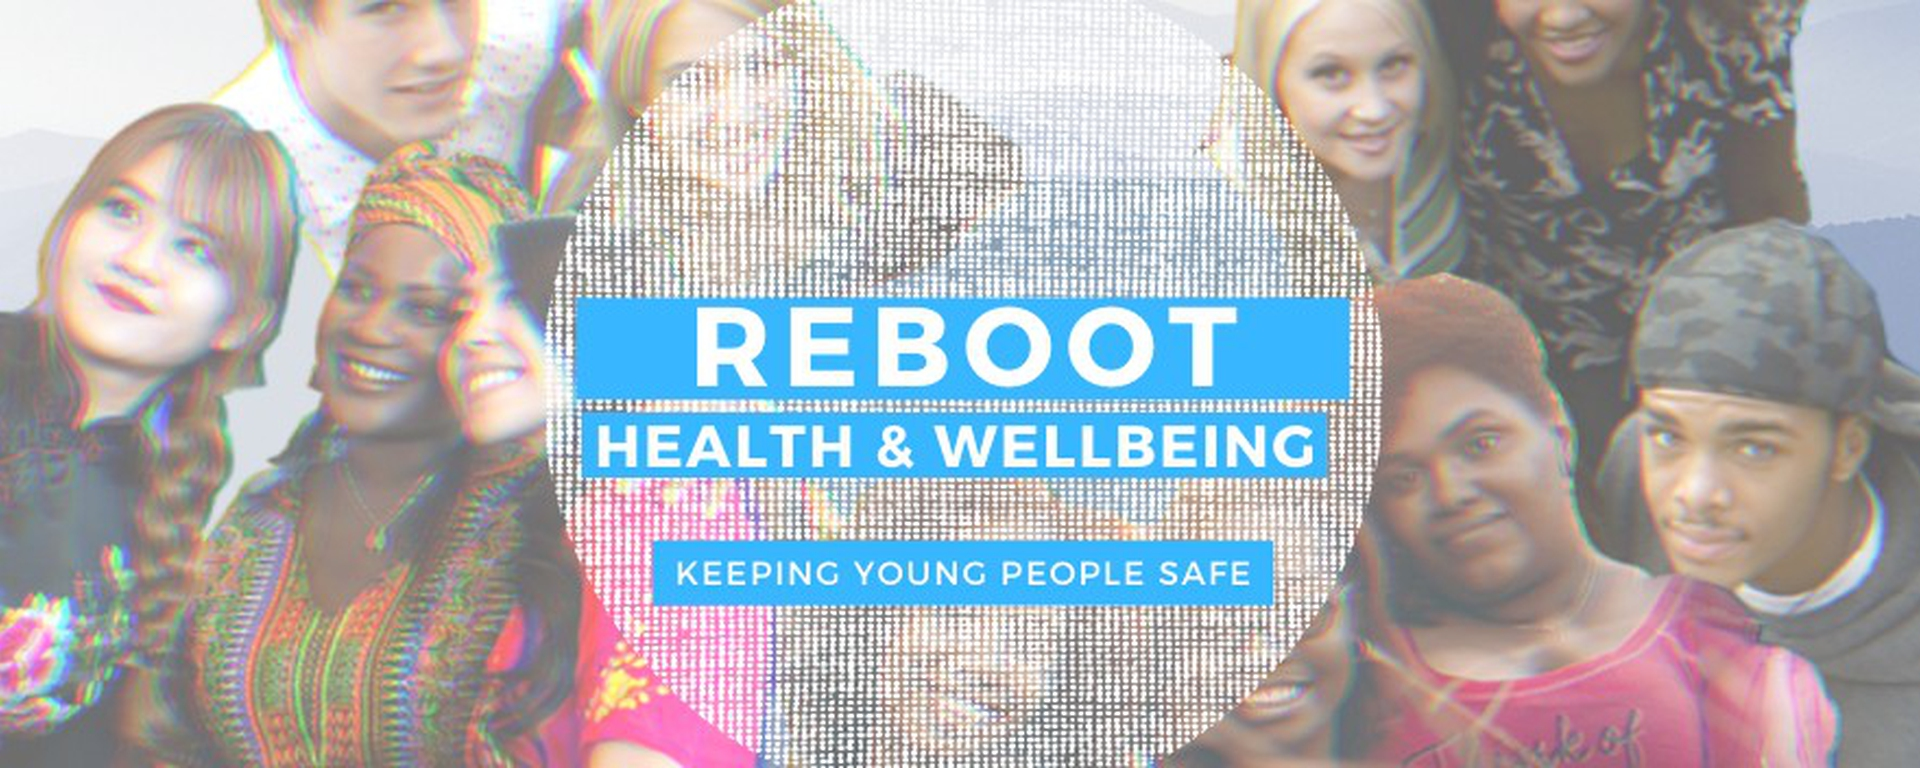 World Health Organization - Reboot Health & Wellbeing – Keeping Young People Safe Movemeback African initiative cover image